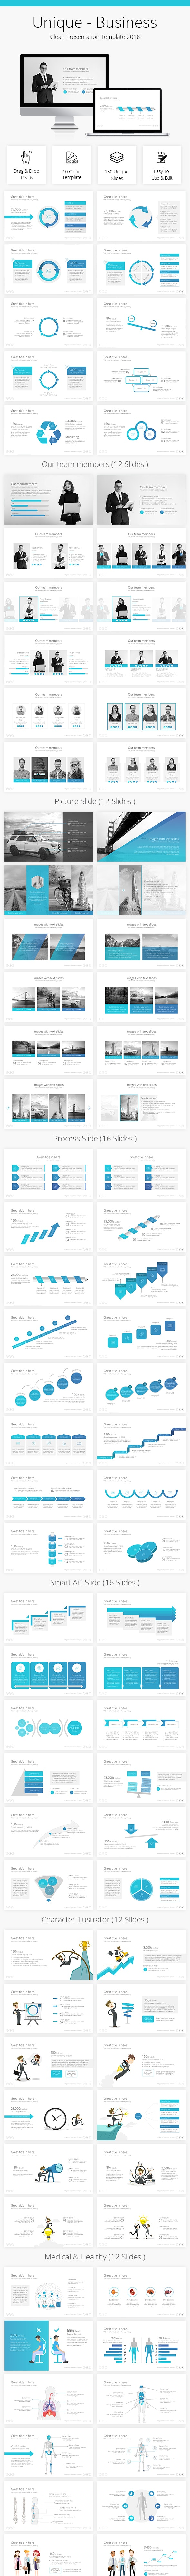 Infinity Business Clean Google Slides Template 2018 - Google Slides Presentation Templates